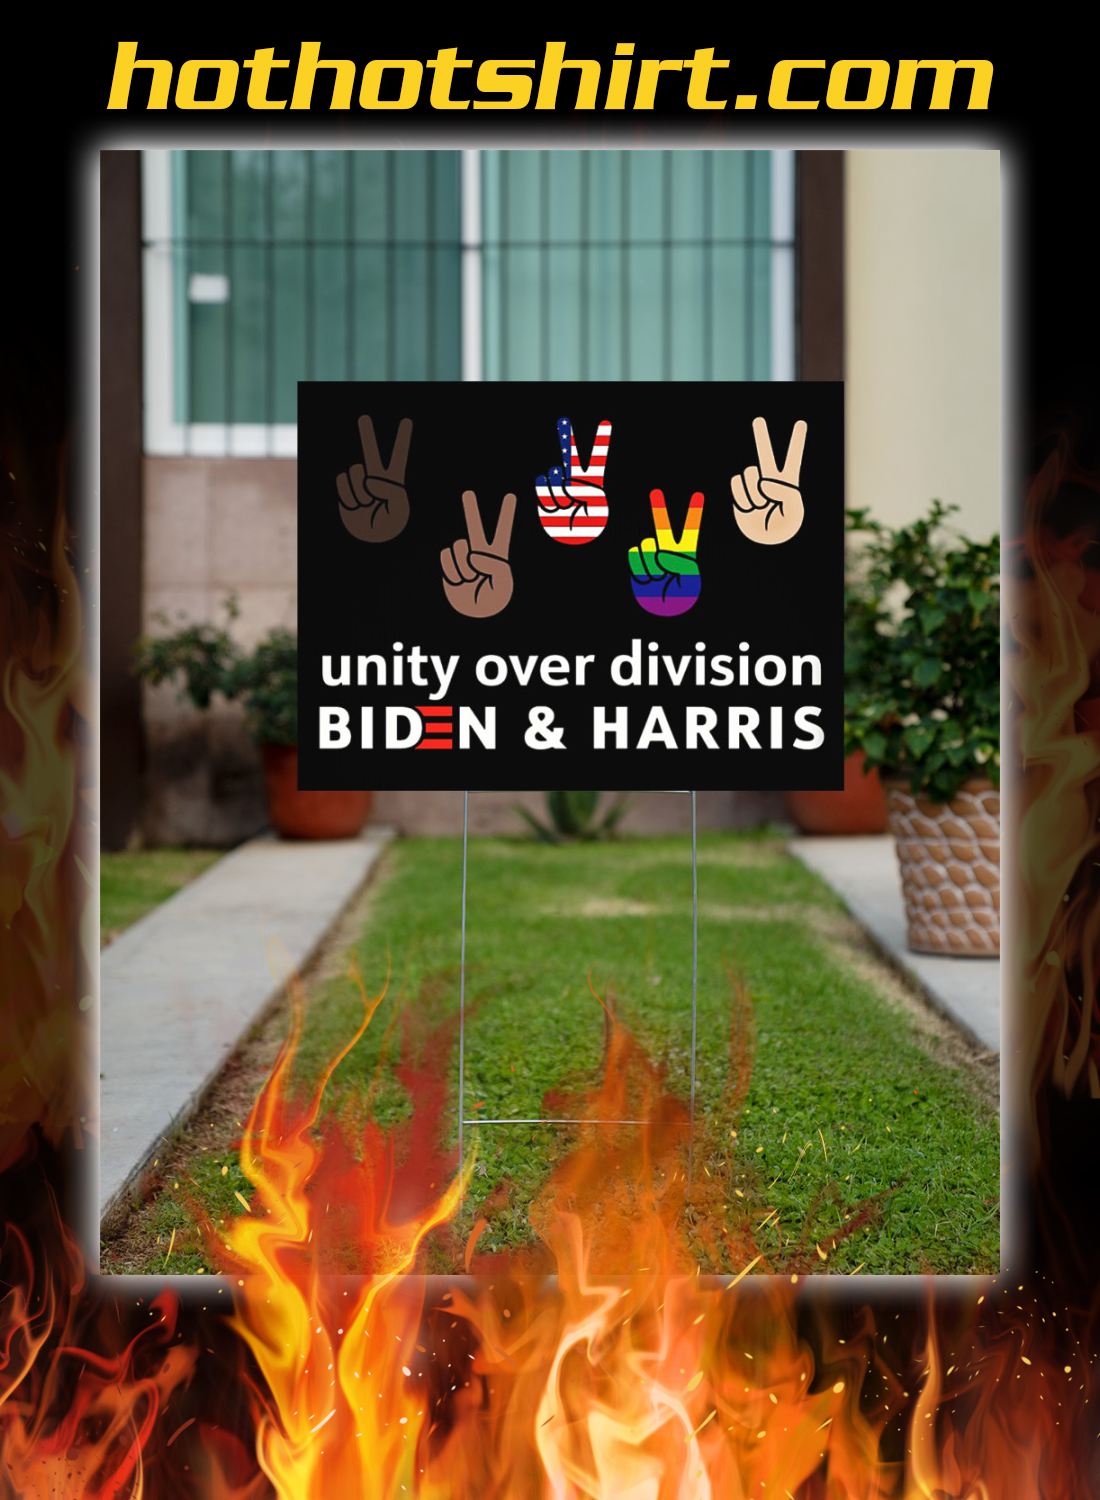 Unity over division biden and harris yard signs 2